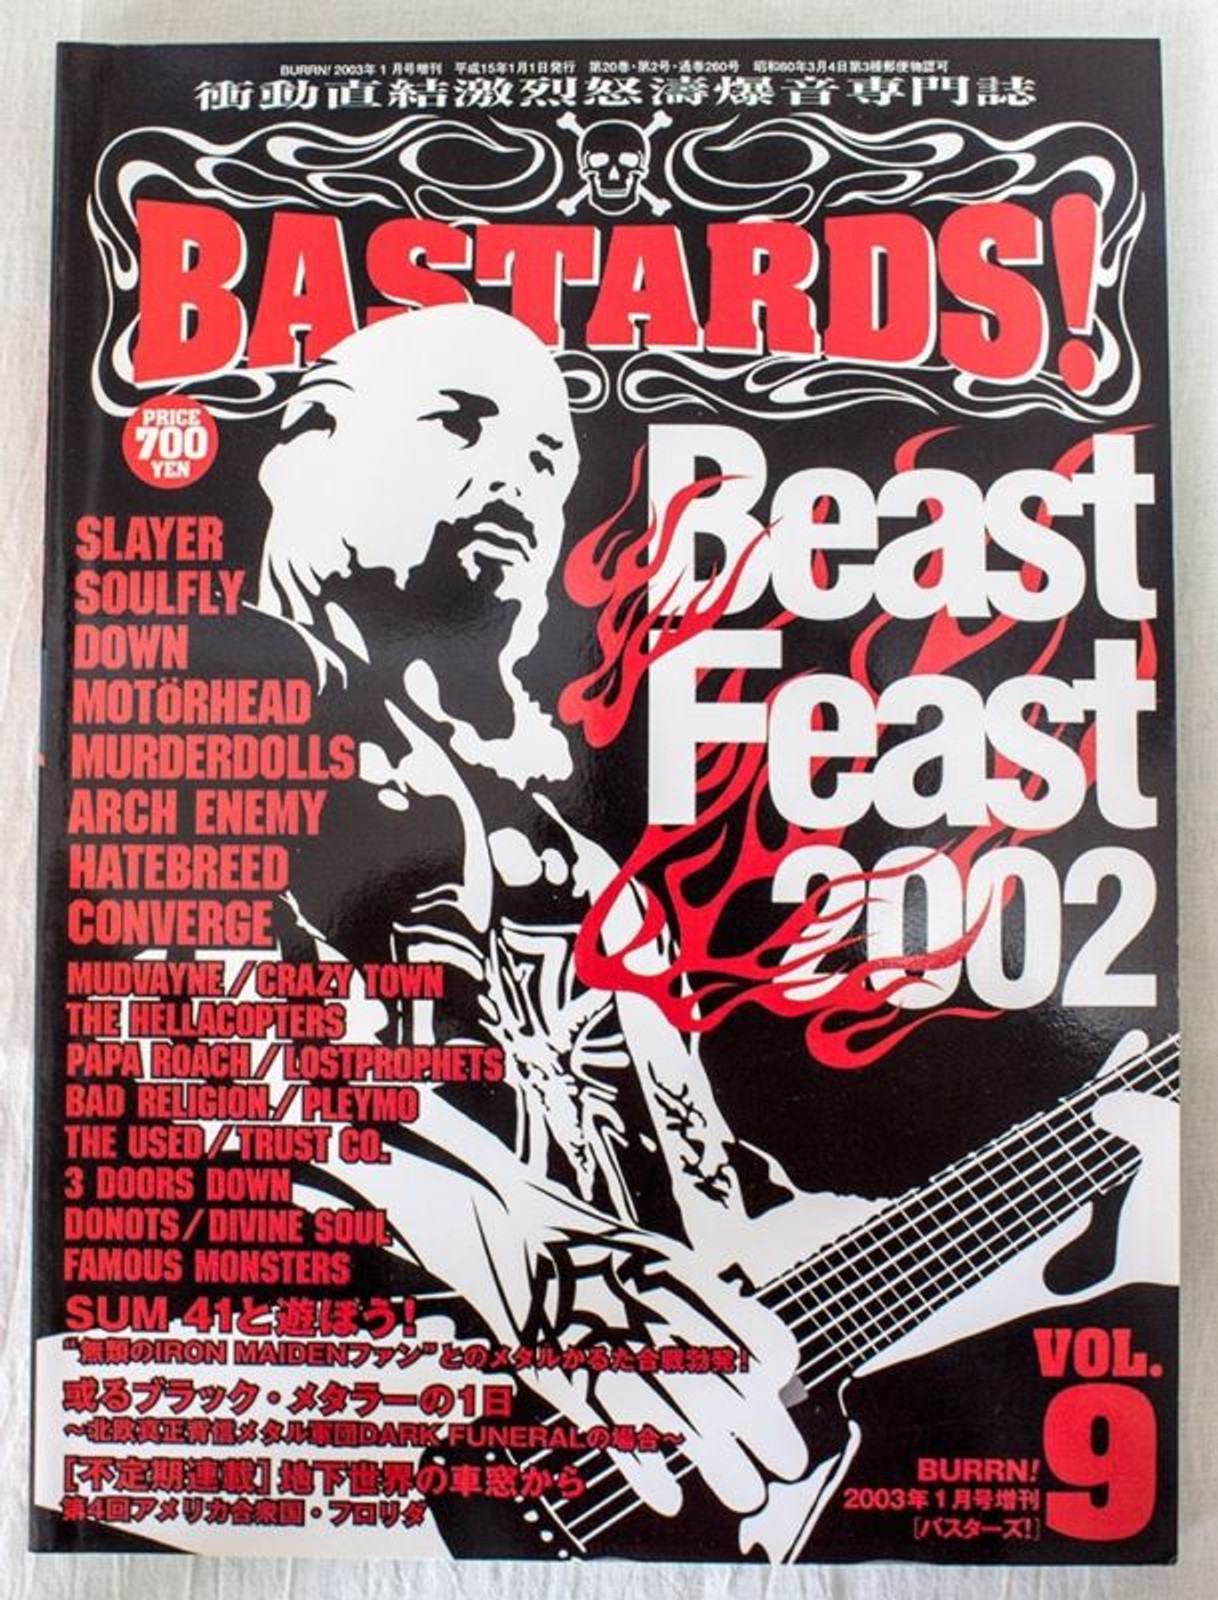 2003 Vol.9 BASTARDS! BURRN! Japan Magazine BEAST FEAST 2002/SUM 41/MOTORHEAD/